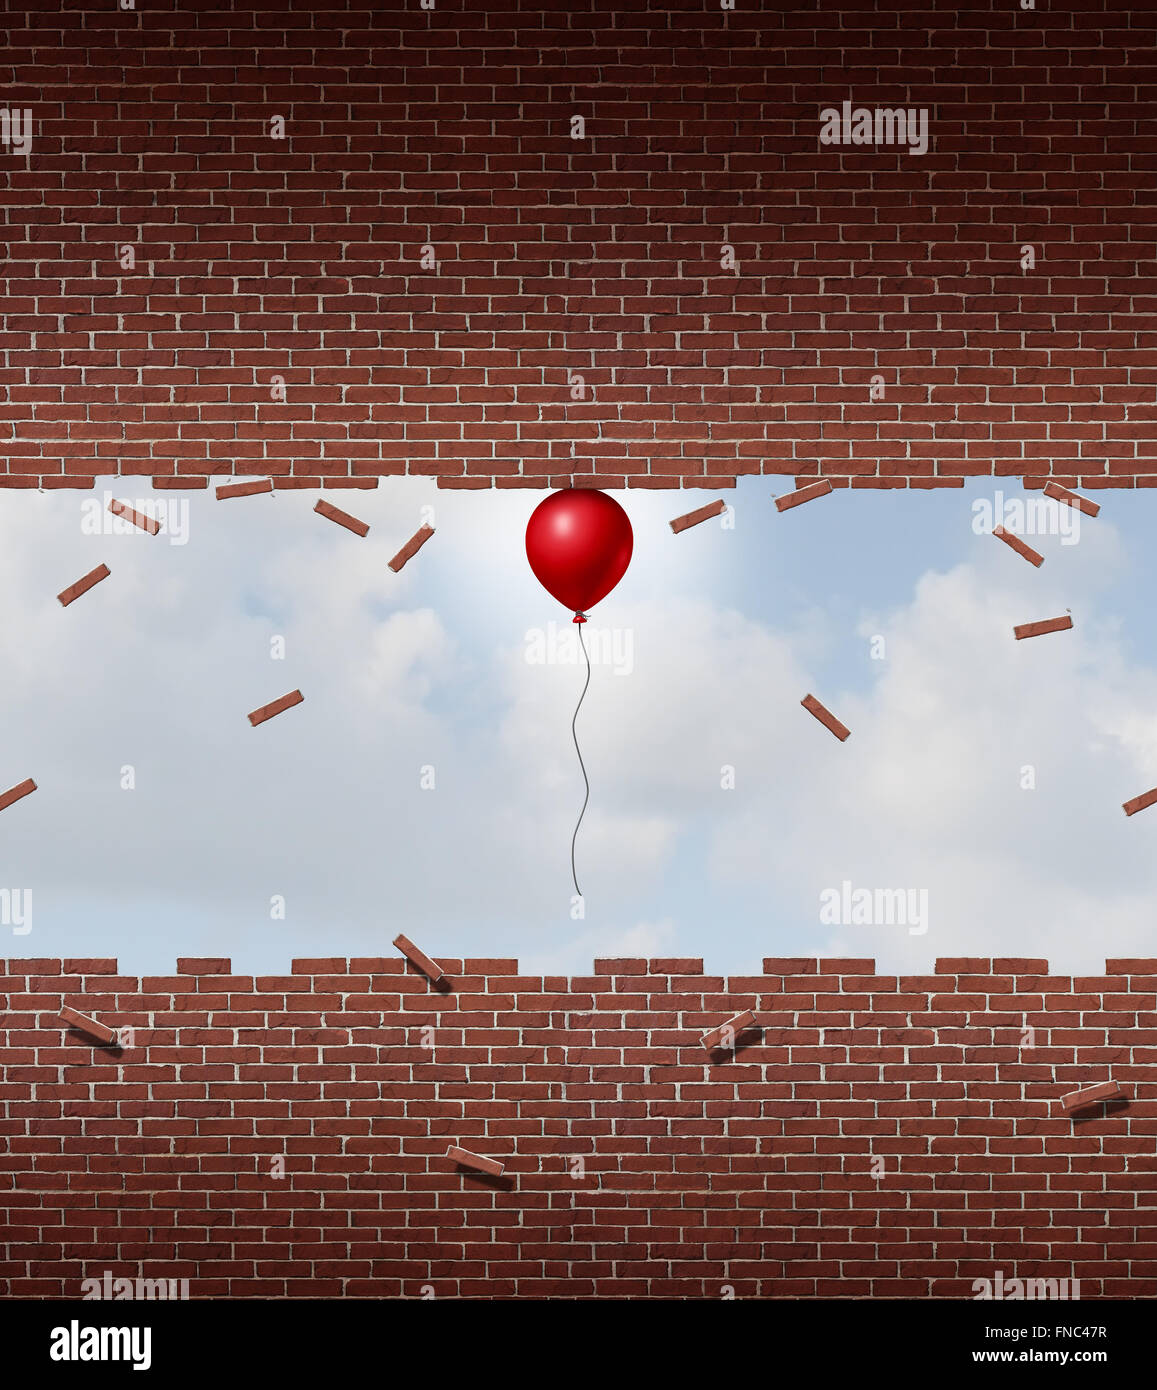 Business power concept and exceptional performance symbol as a small red balloon lifting up and breaking apart a - Stock Image